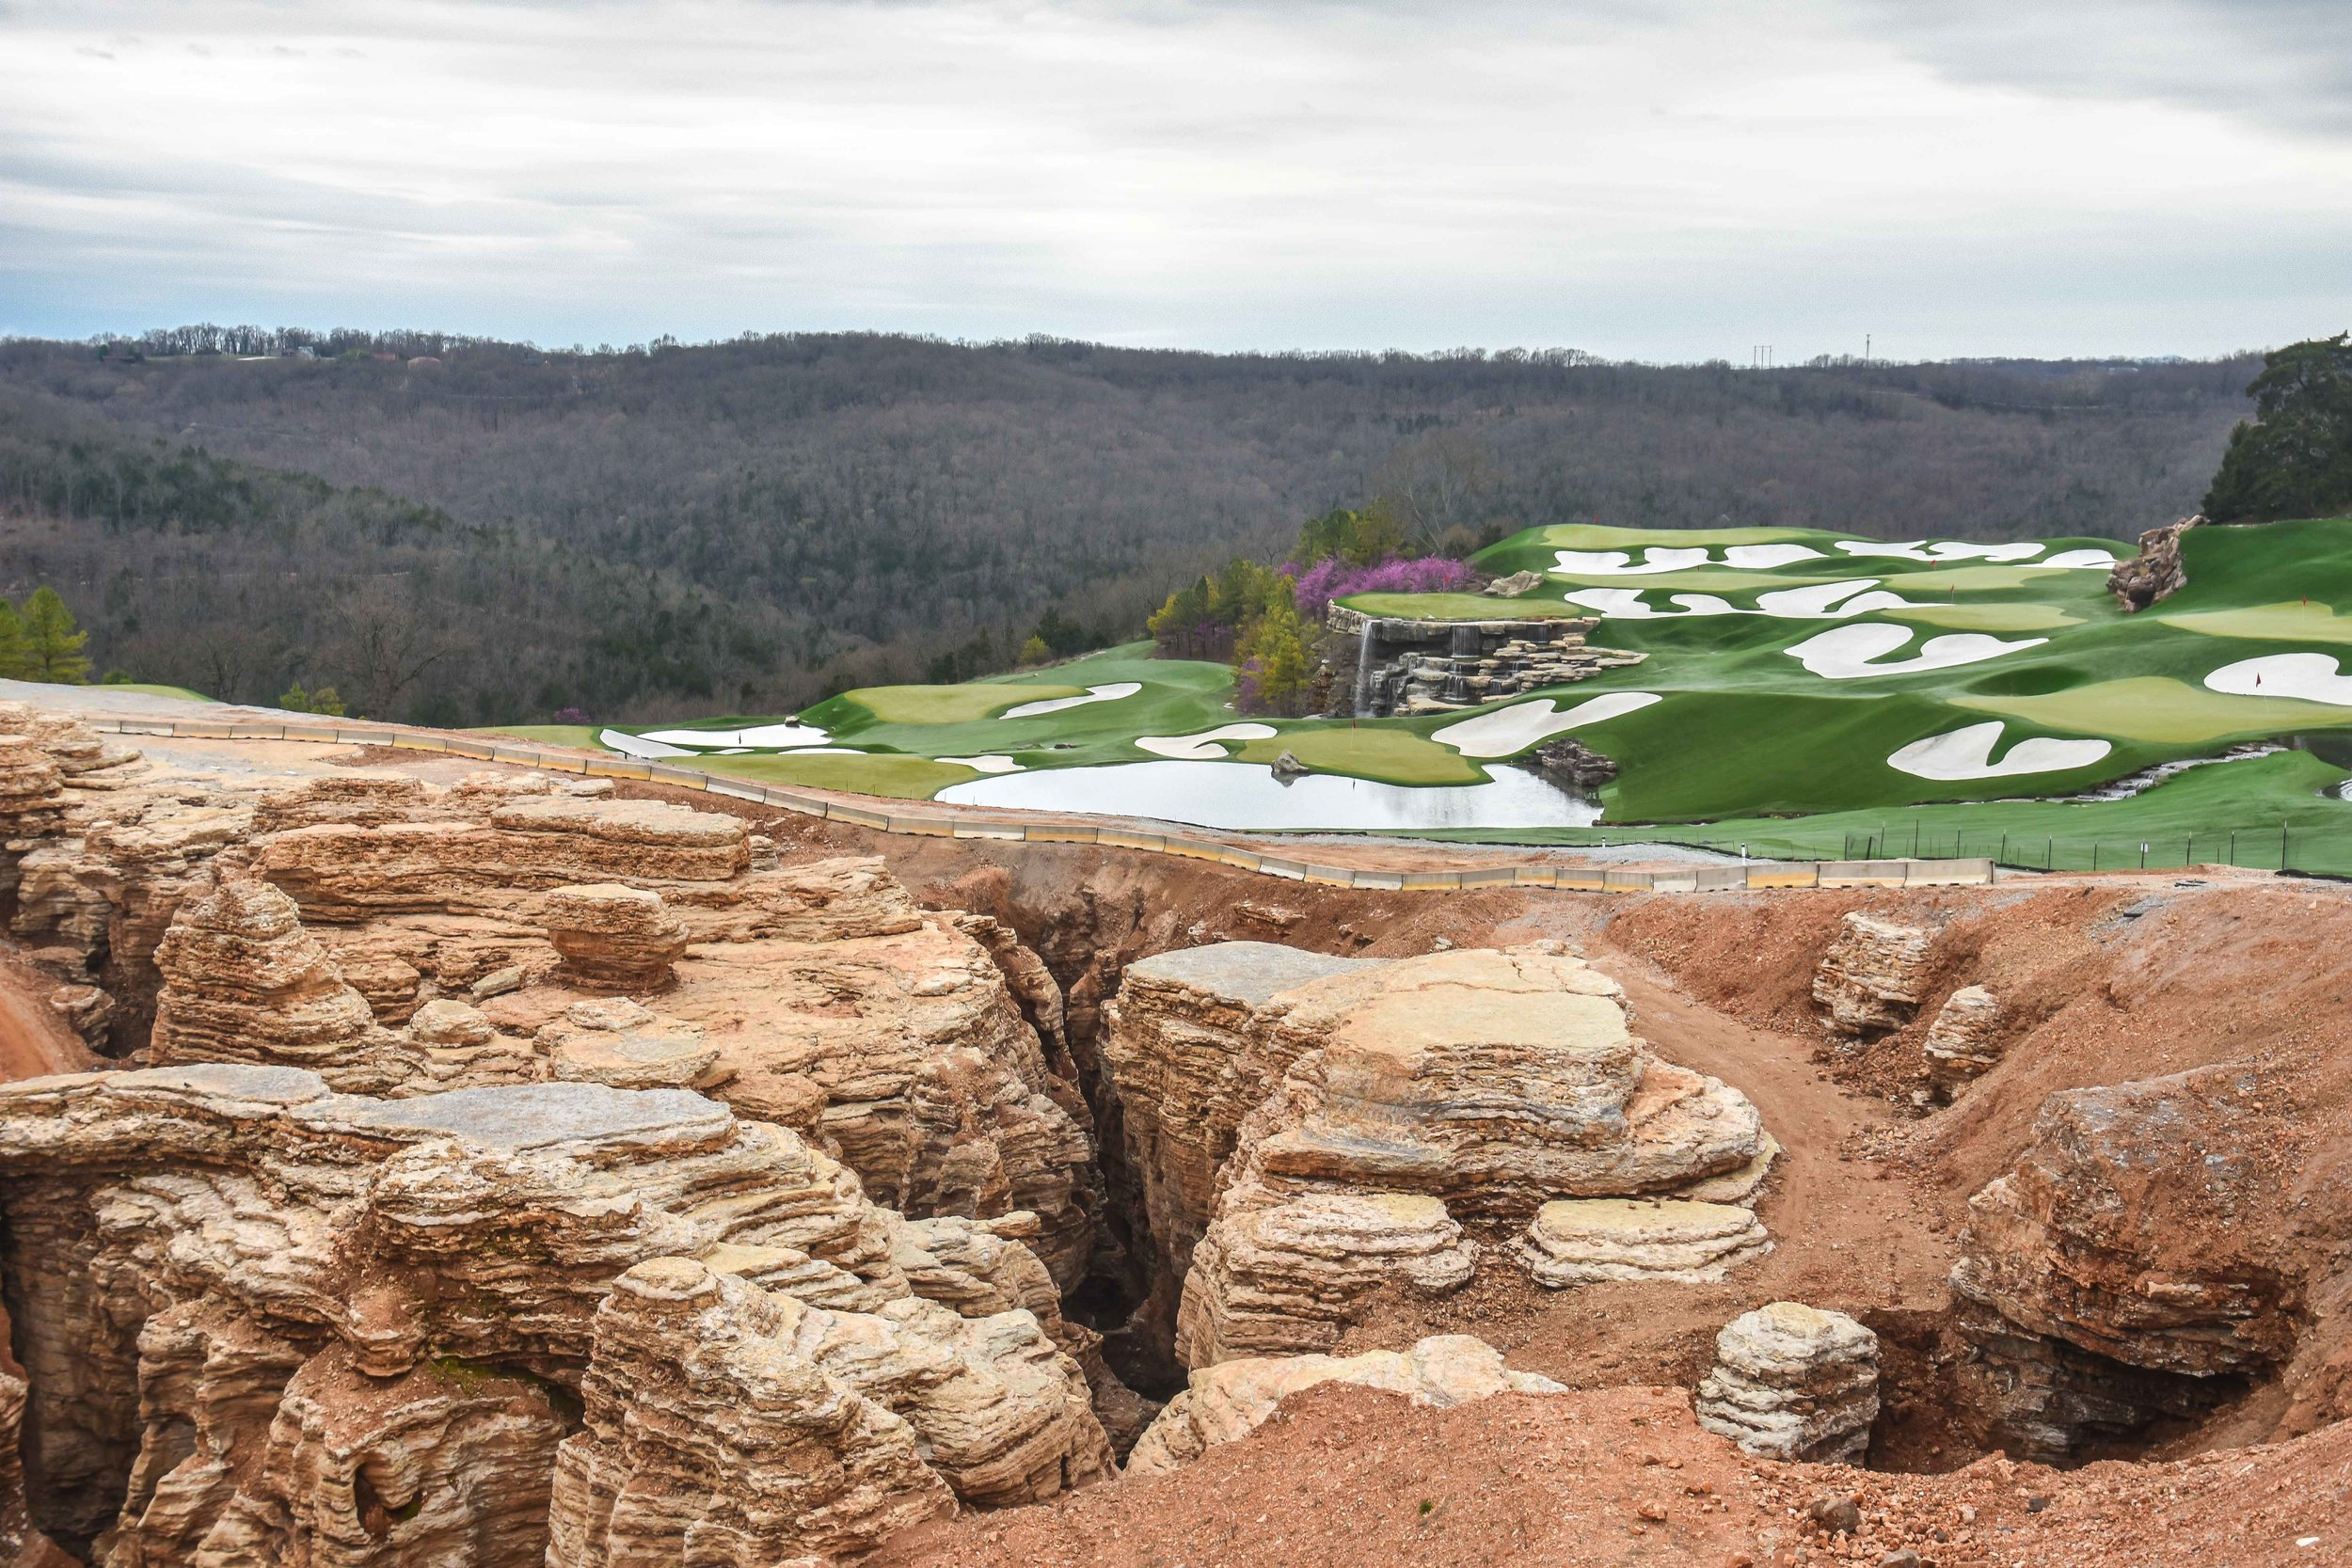 A giant sinkhole has been excavated in front of the range at The Top of The Rock.